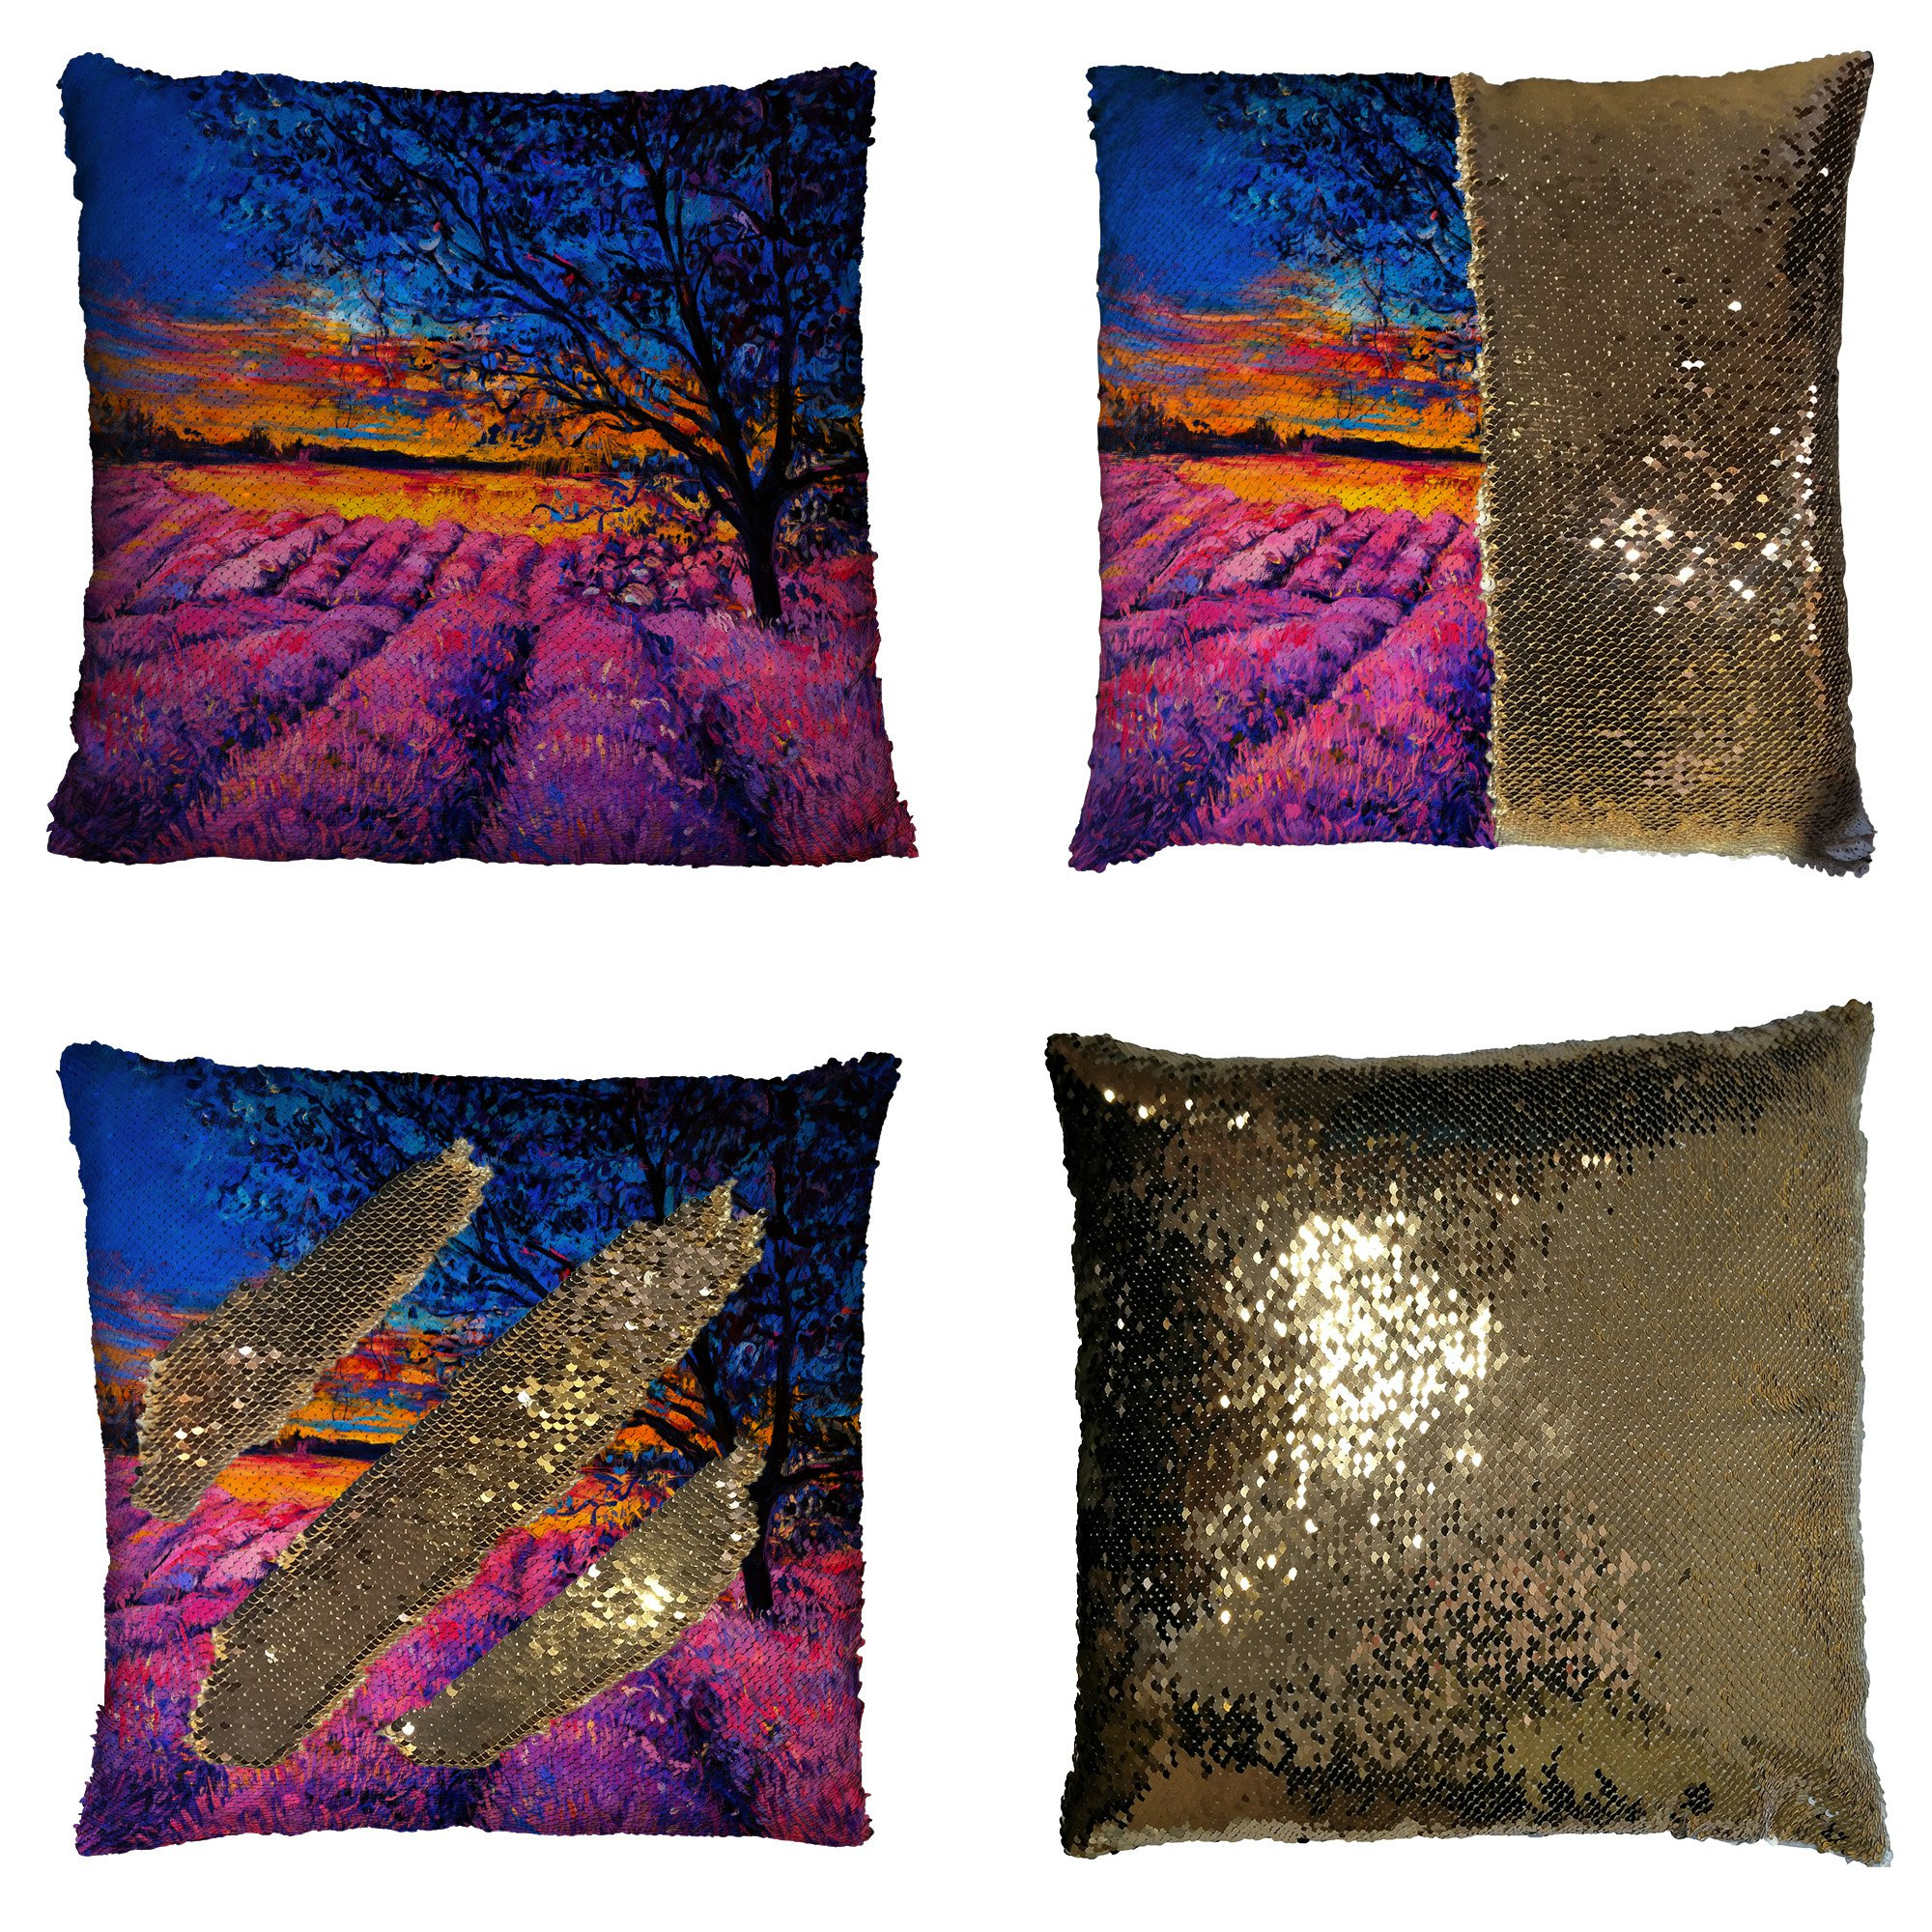 GCKG Beautiful Flower Floral Lavender Field Pillowcase, Oil Painting Tree of life Reversible Mermaid Sequin Pillow Case Home Decor Cushion Cover 16x16 inches